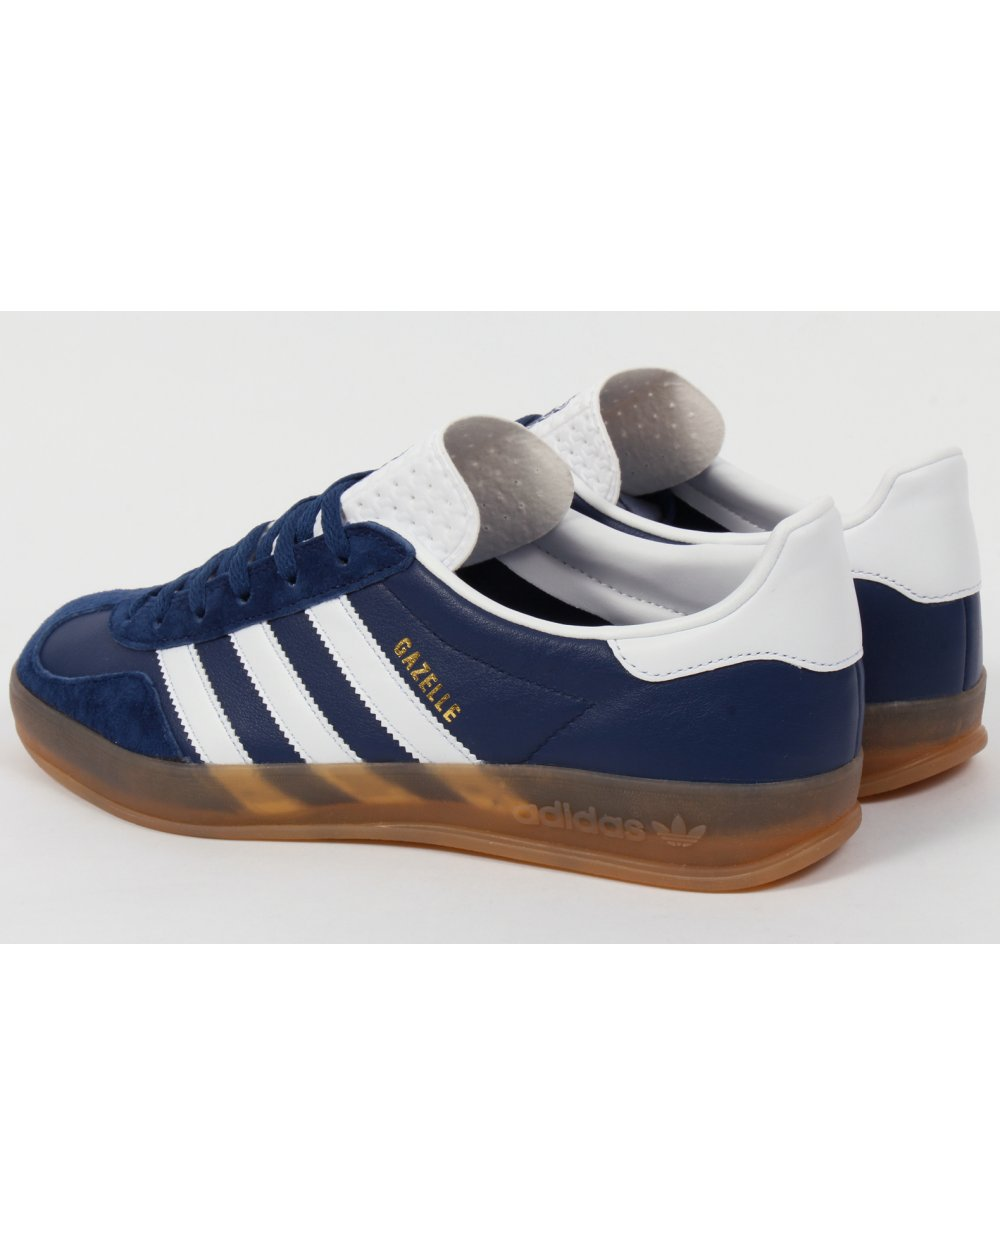 adidas gazelle blue white